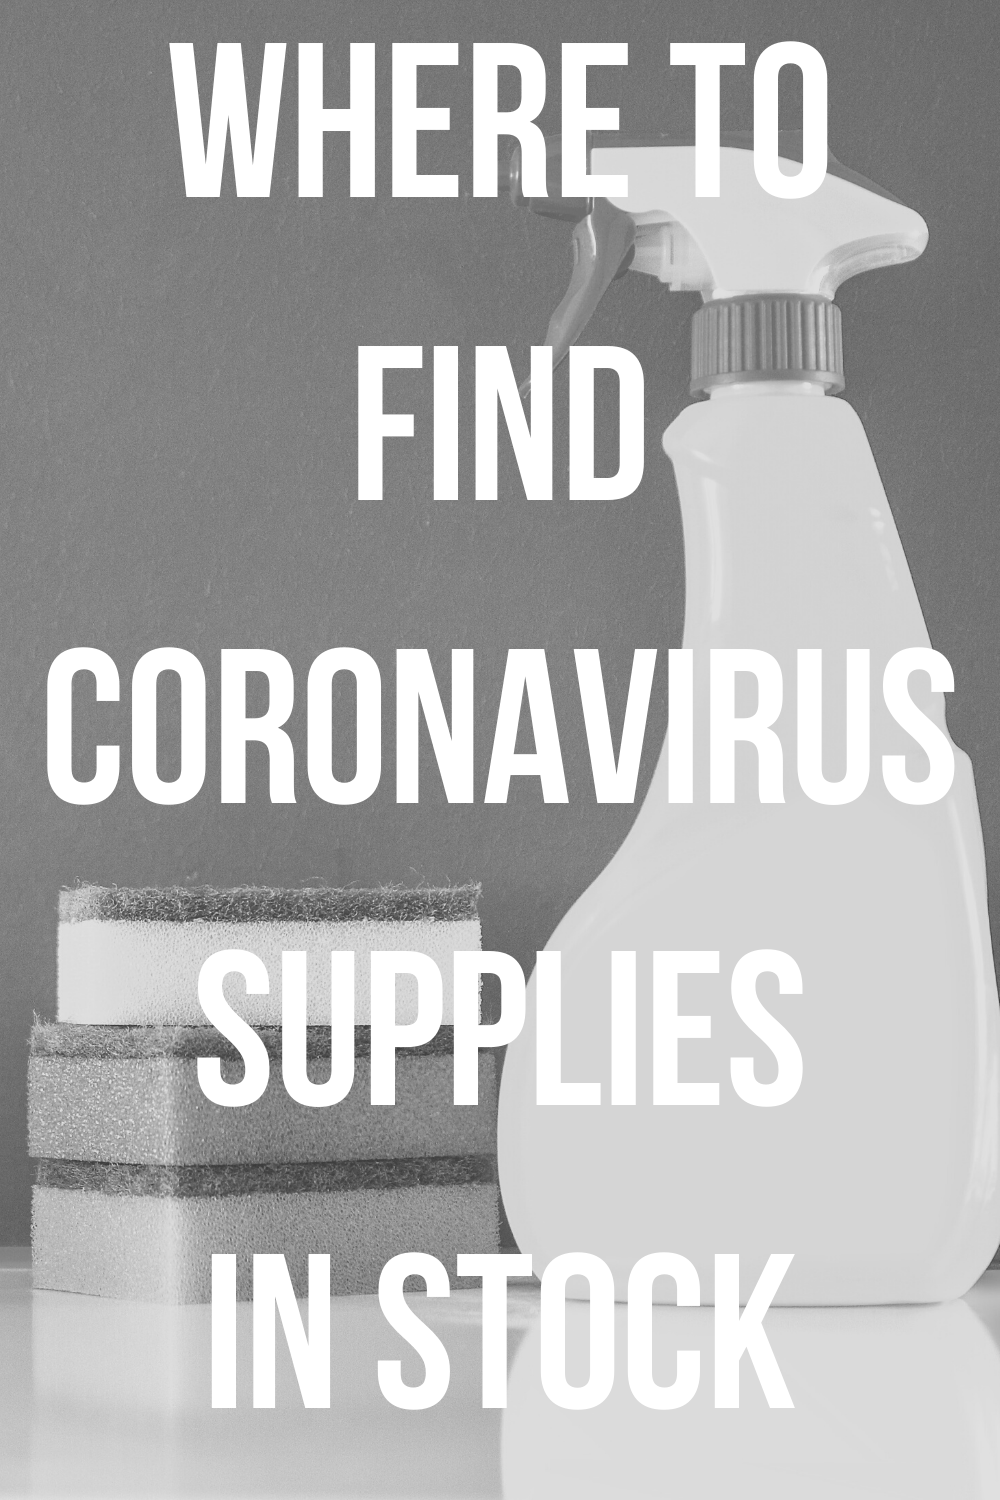 Where to Find Coronavirus Supplies in Stock -- If you're looking for baby wipes, hand sanitizer, or even toilet paper in stock, read this! I've scoured the Internet to find the retailers with IN STOCK coronavirus supplies. Share with your friends and family! #coronavirus #covid19 #cdc